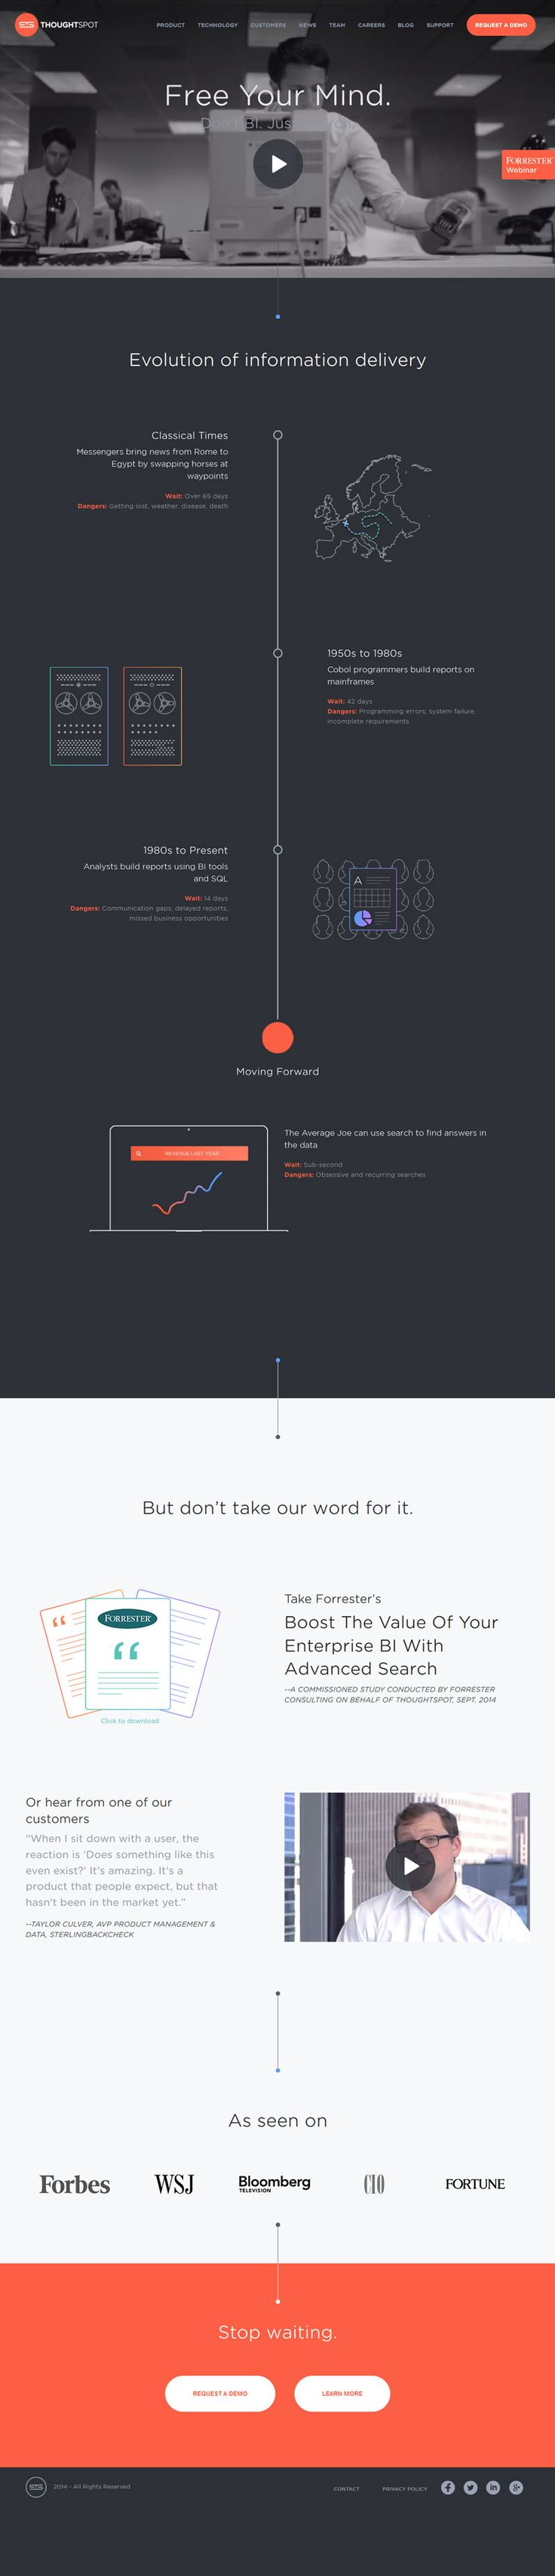 Flat Design Website; Example; Category: Inspiration; Name Site: ThoughtSpot; Color: Gray, Orange.